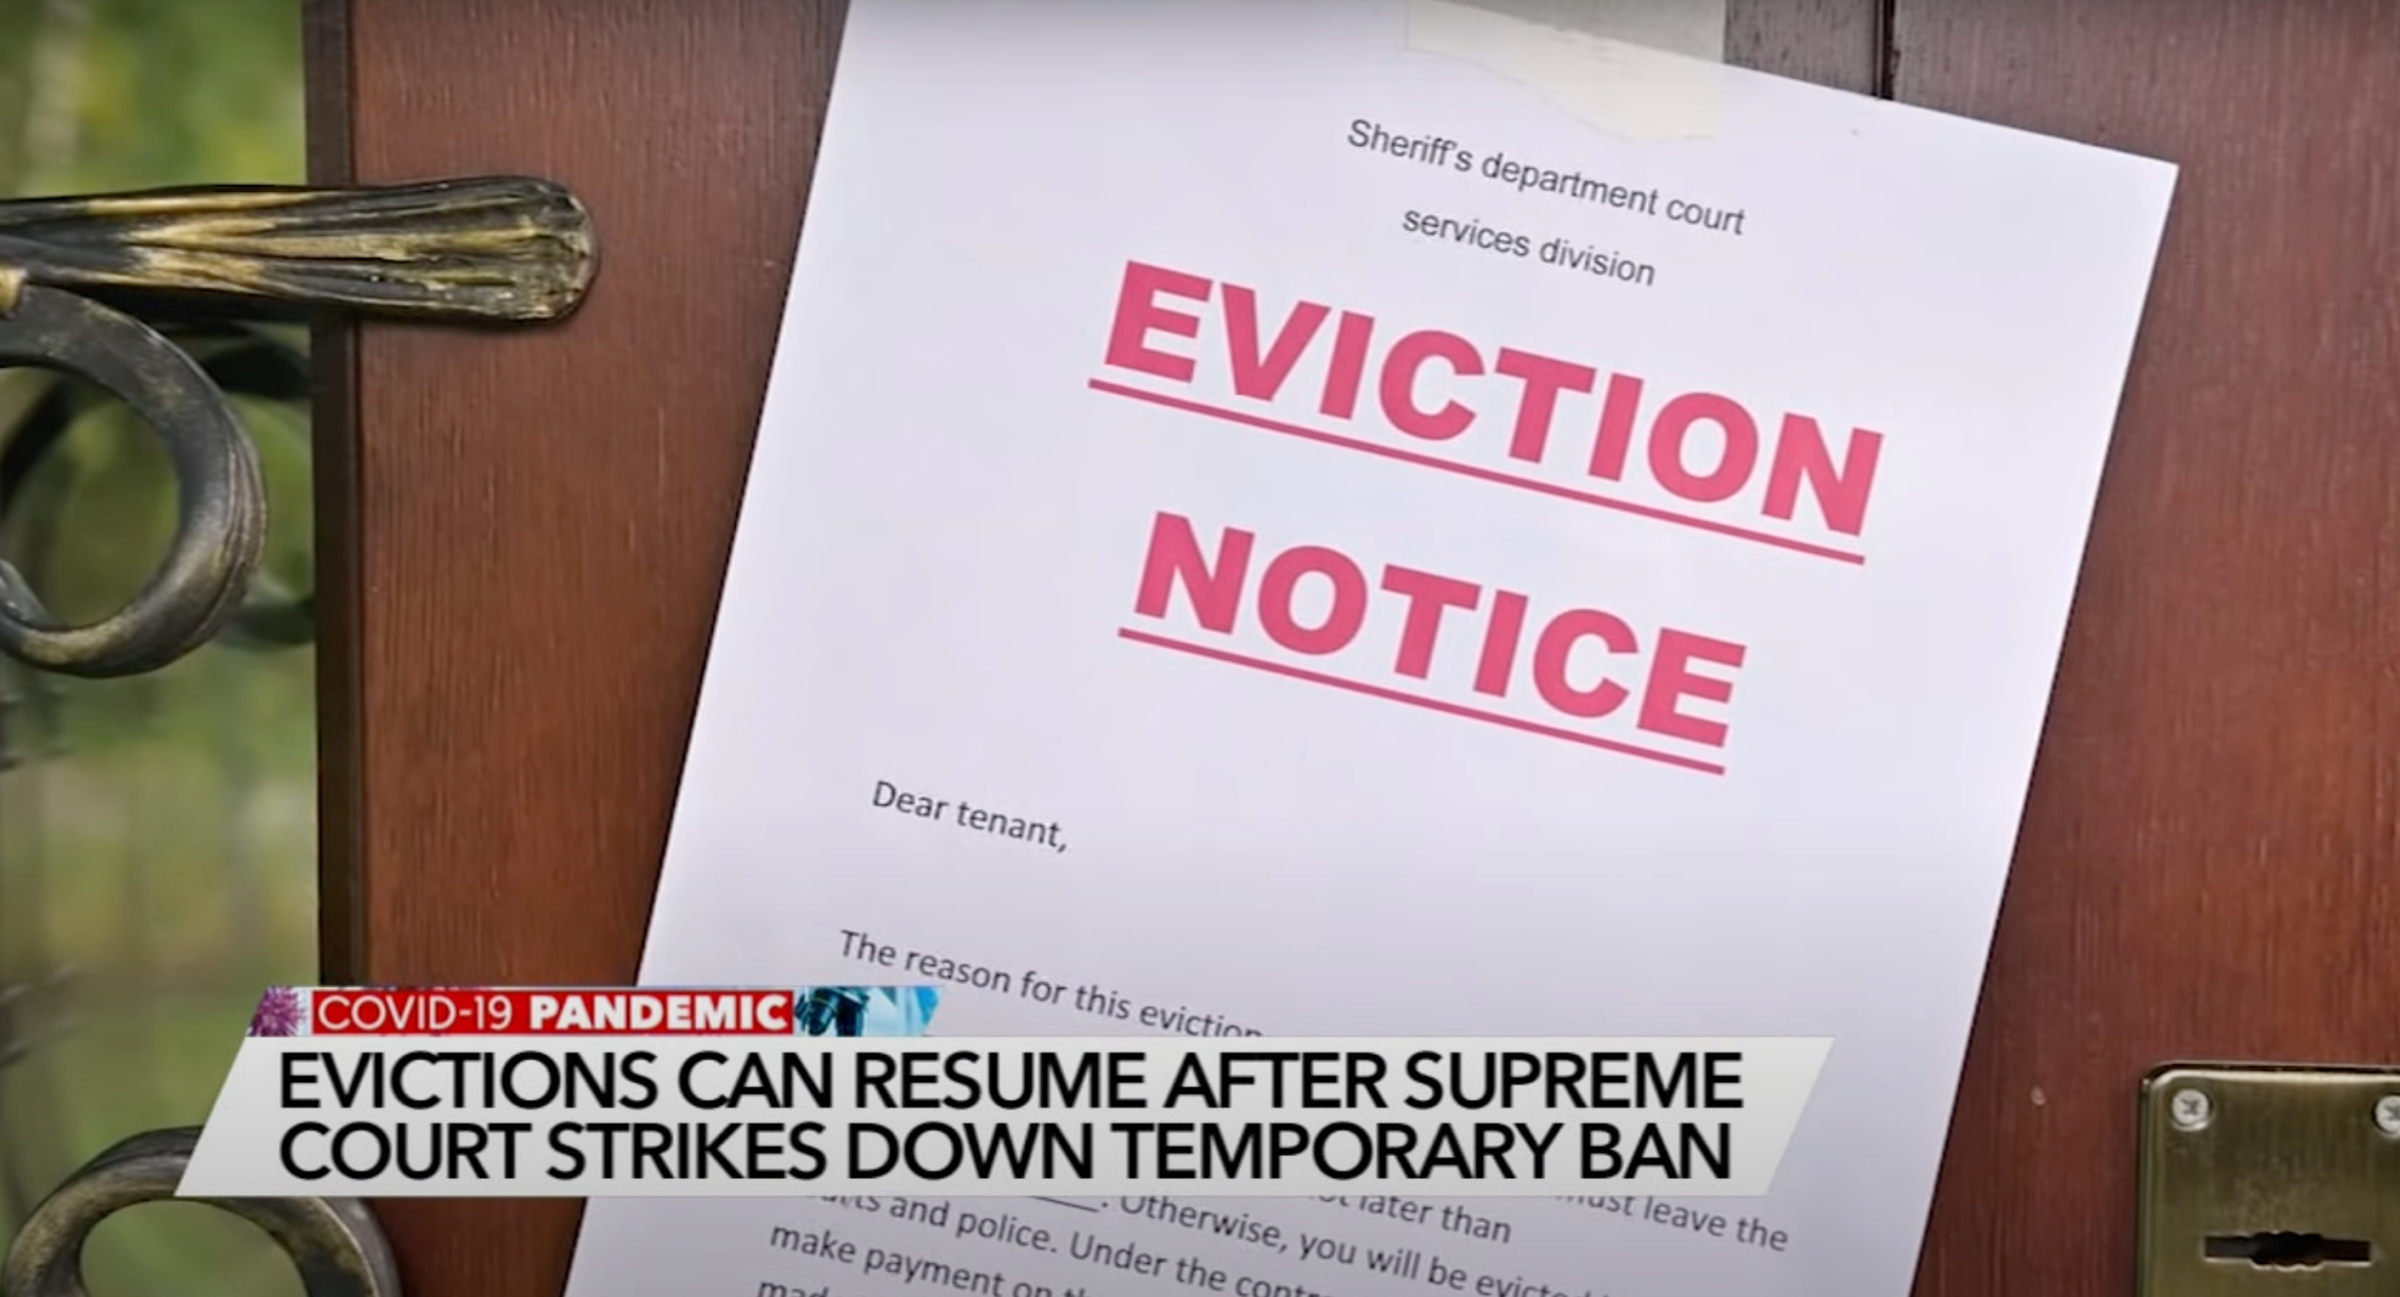 Picture of eviction notice in a sotry about the Supreme Court overturning the eviction moratorium